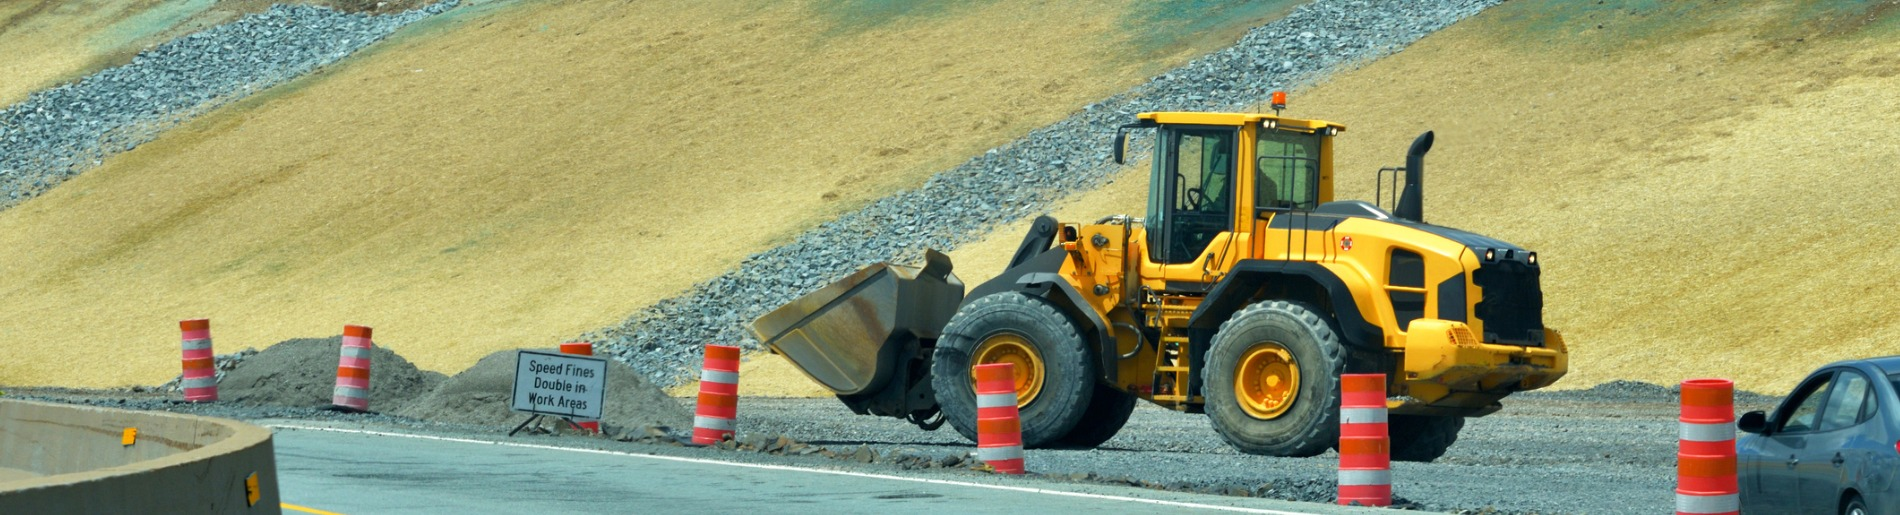 Road under construction with pay loader